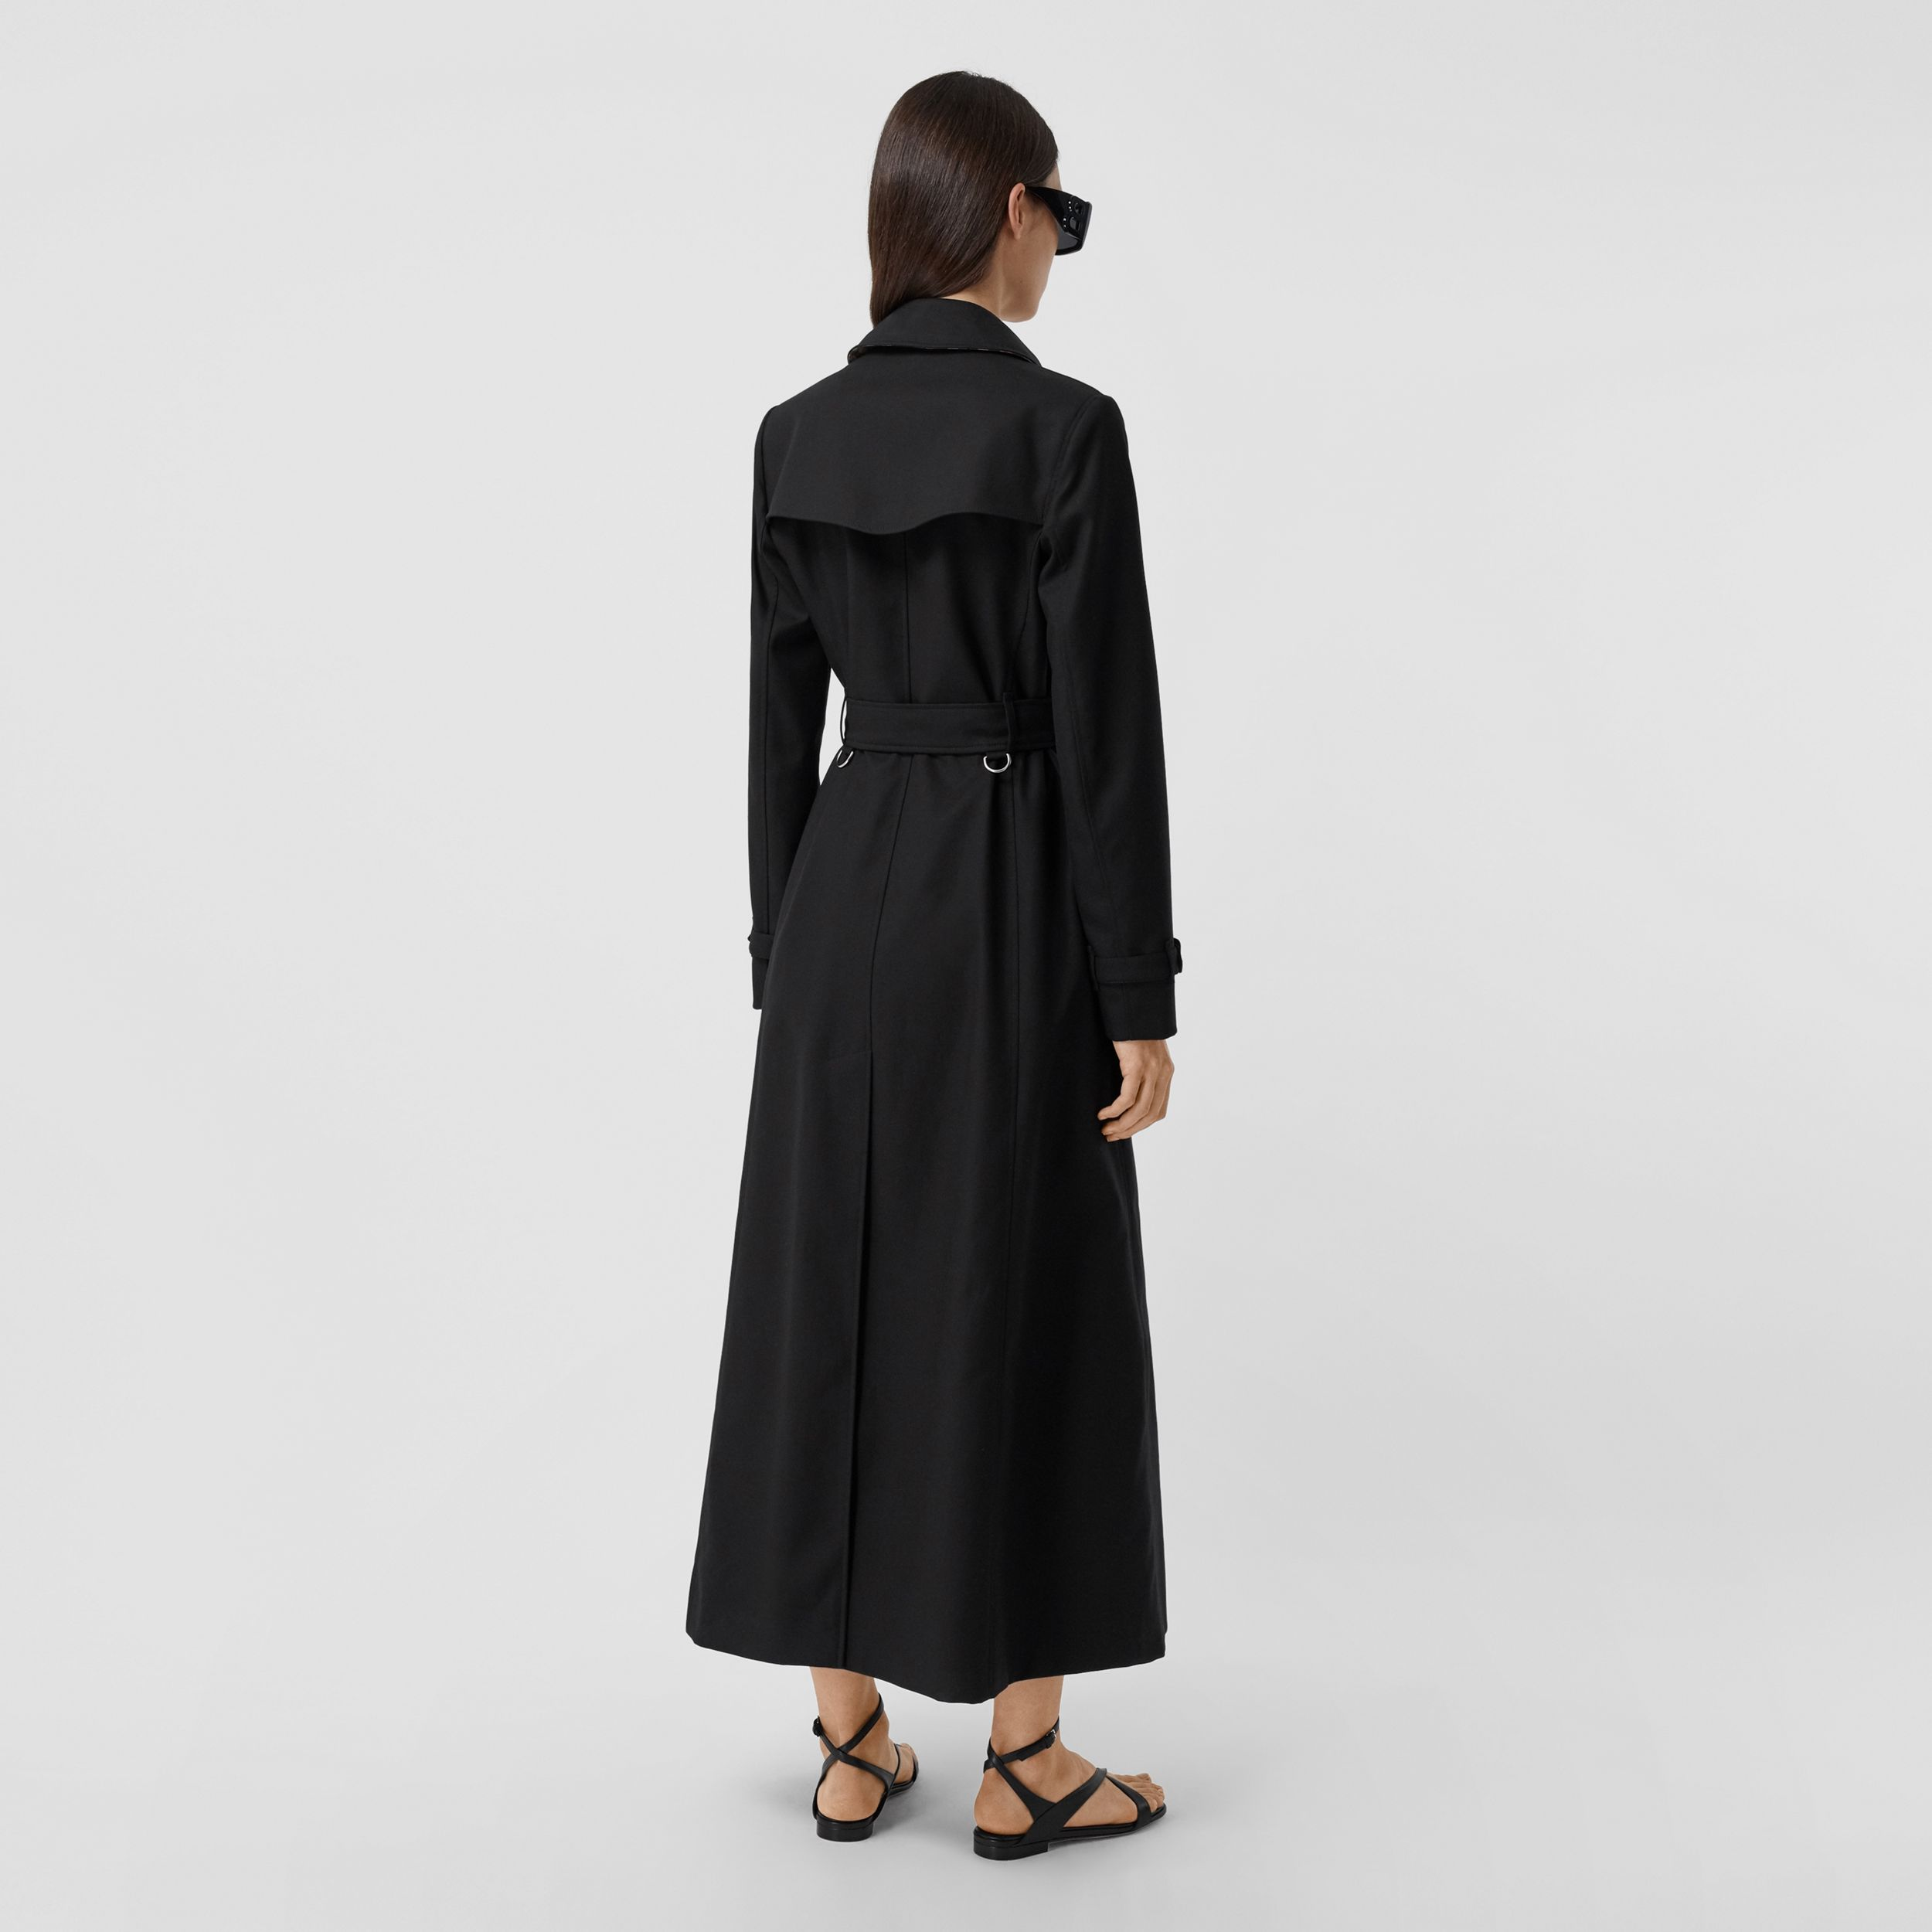 Pocket Detail Cotton Gabardine Trench Coat in Black - Women | Burberry United Kingdom - 3